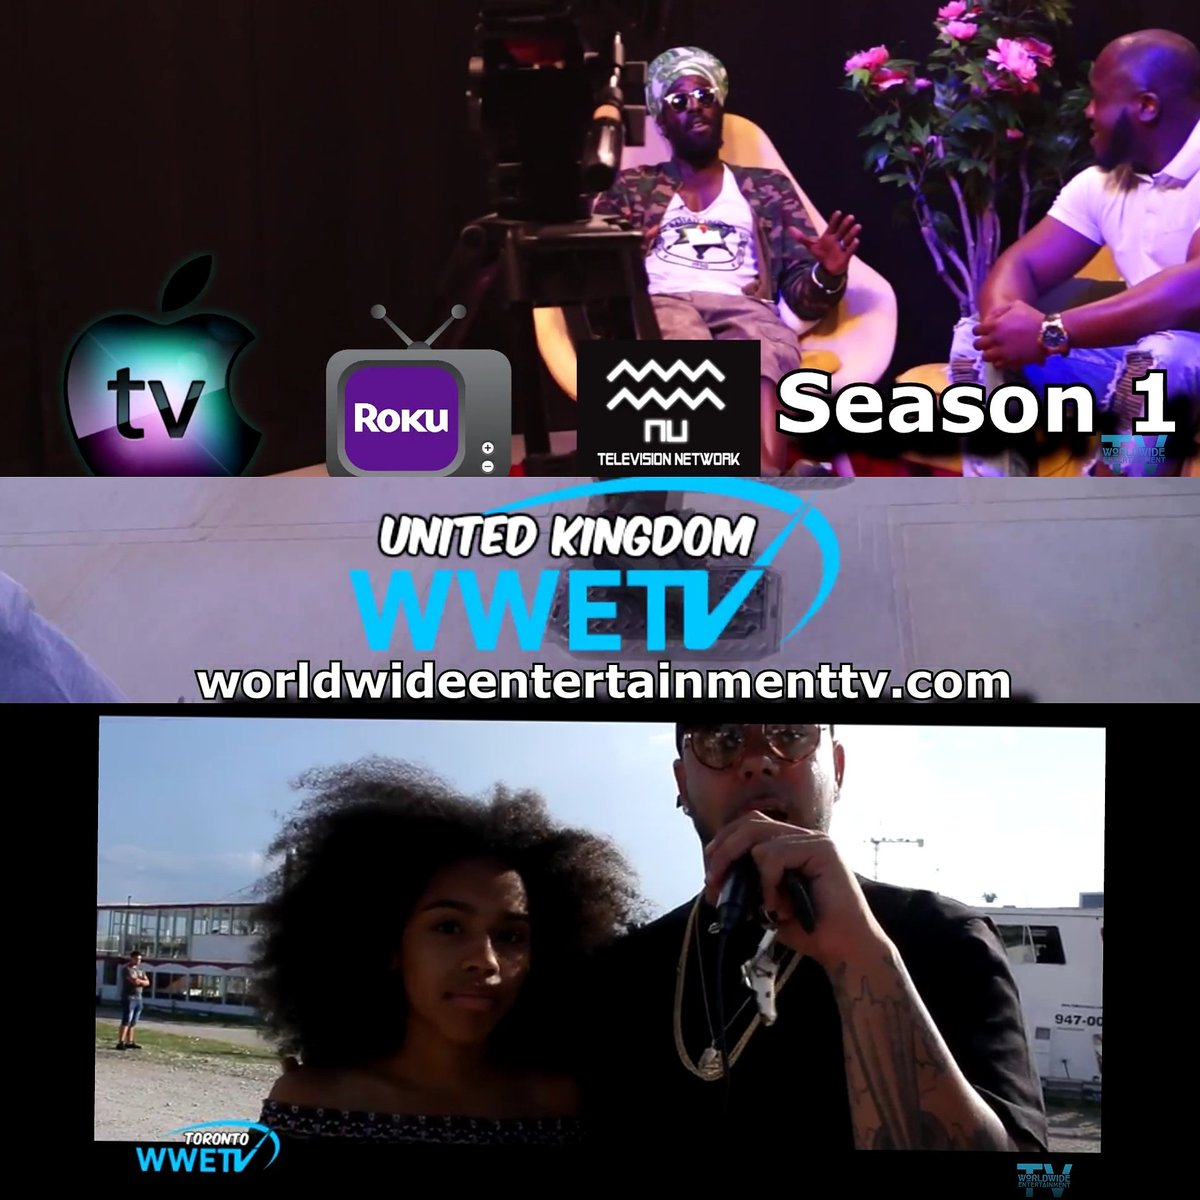 &quot; At 7:30pm tune in as we go #International! This #week we premiering@wwetv_website in #HD only in #NutvNetwork!<br>http://pic.twitter.com/miQxRRhUnj